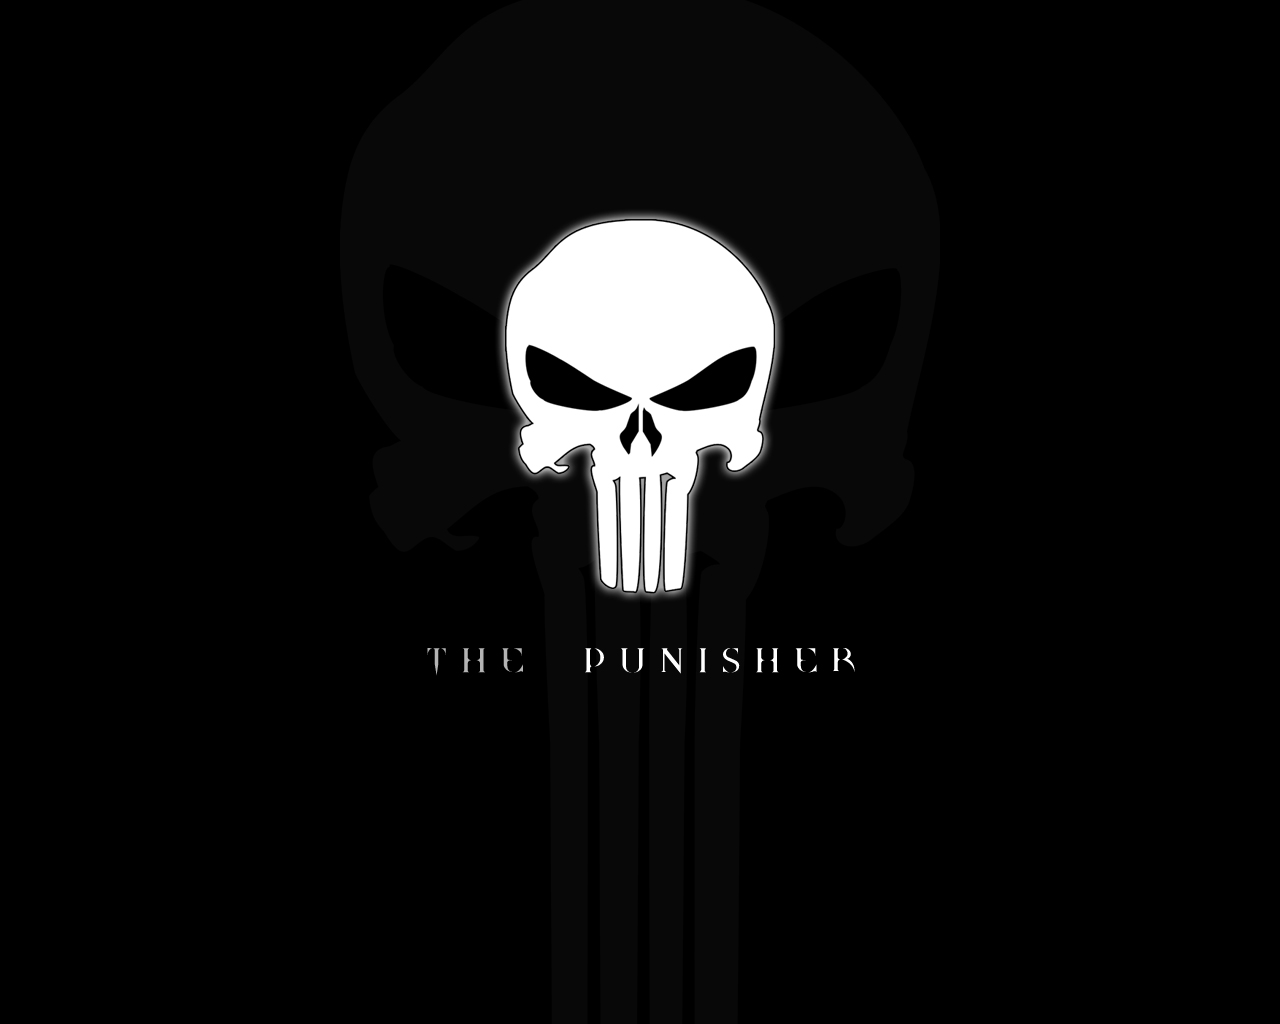 punisher logo wallpapers - photo #14